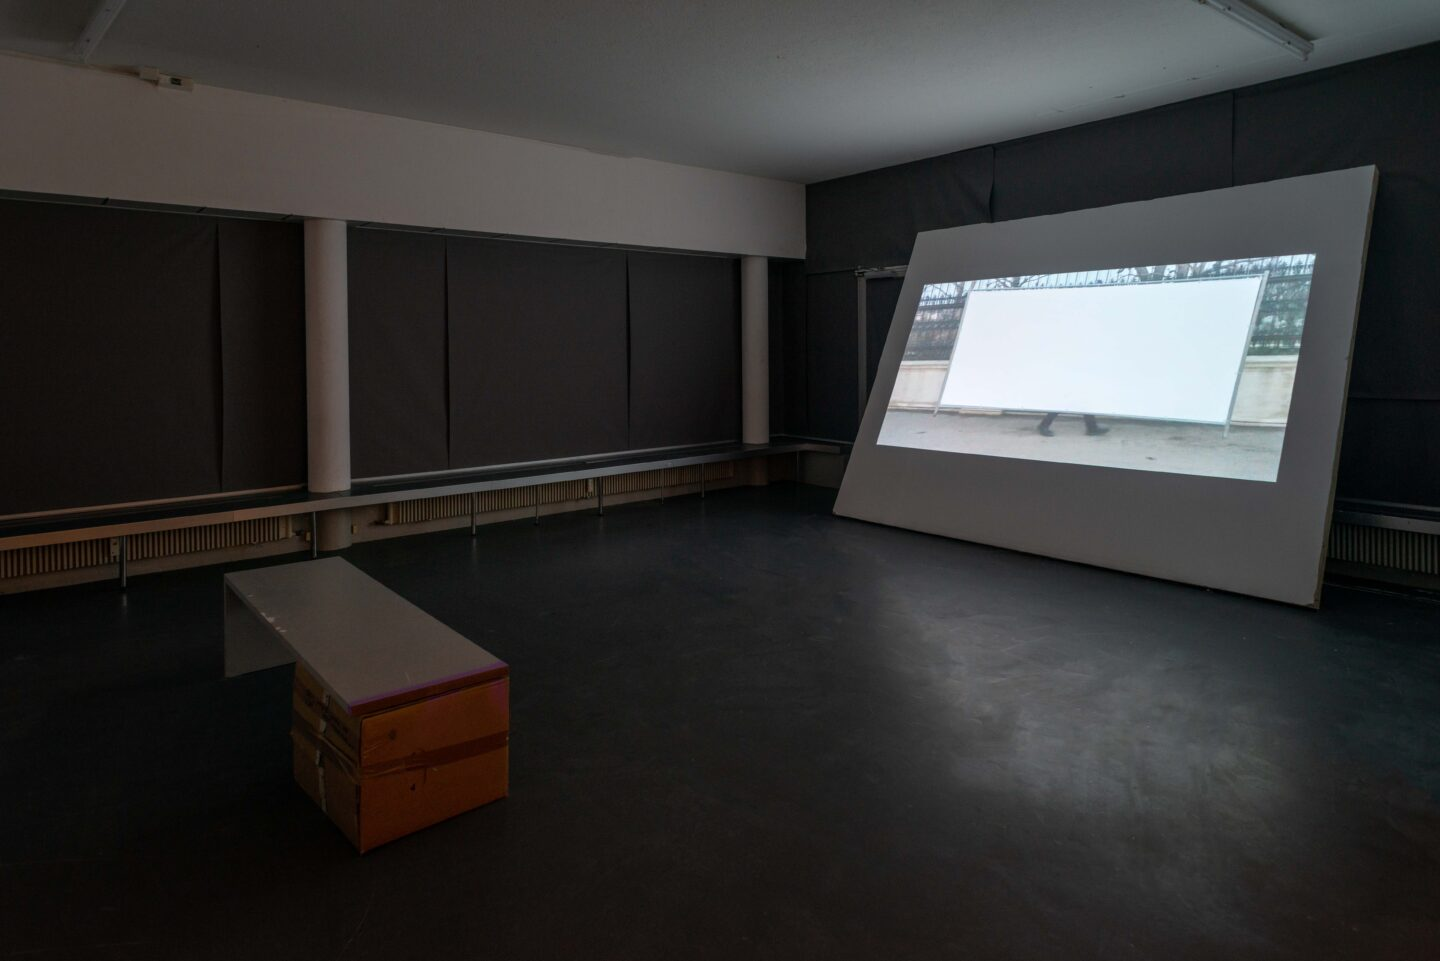 Exhibition View Klara Lidén Soloshow «Now Two Three» at Weiss Falk, Basel, 2019 / Photo: Flavio Karrer / Courtesy: the artist and Weiss Falk